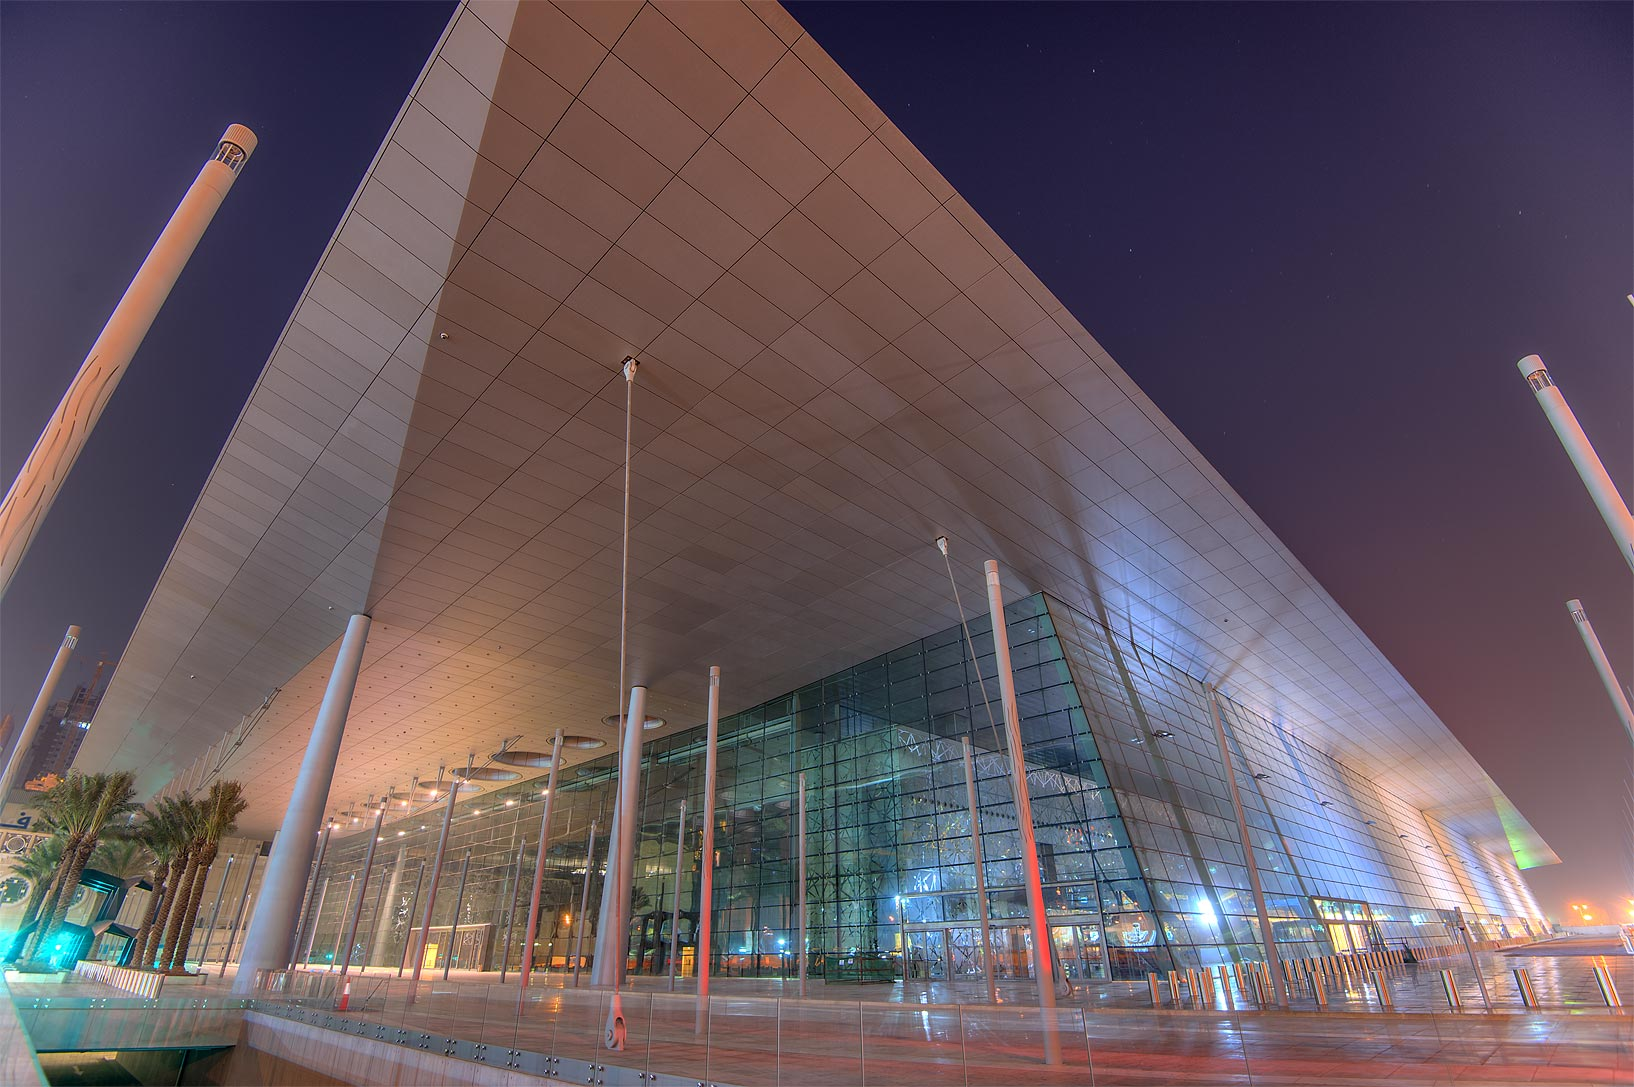 Exhibition and Convention Center (DECC) near City Center mall in West Bay. Doha, Qatar